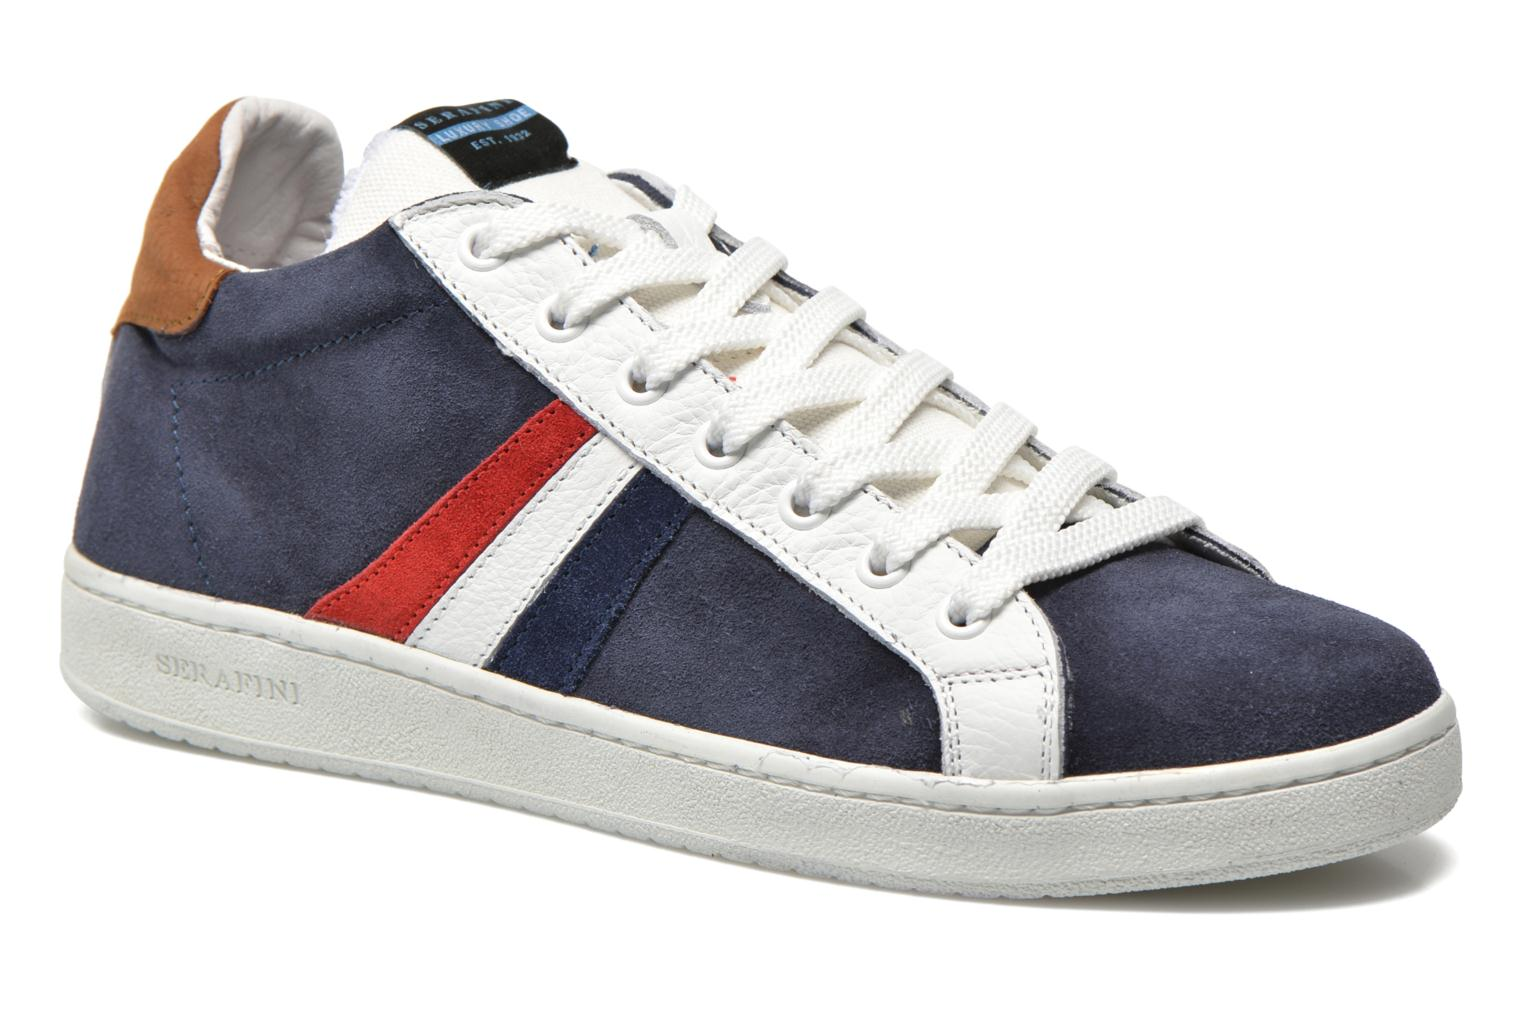 Sneakers Borg by Serafini